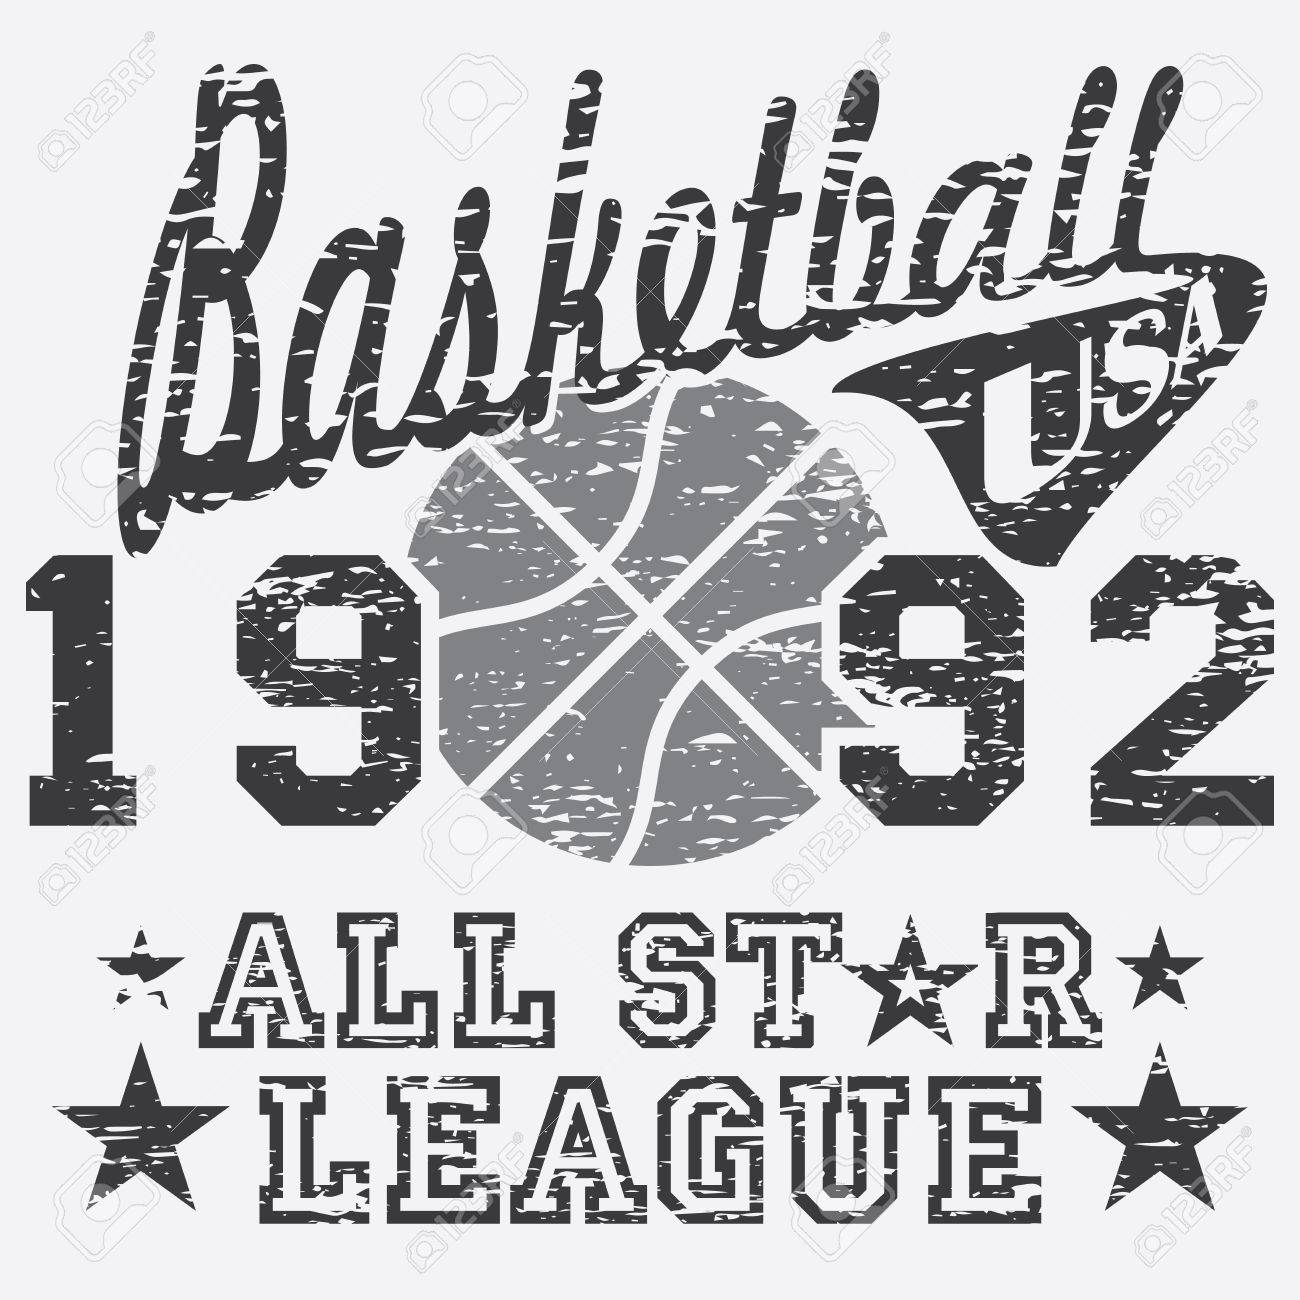 Design t shirt and print - Basketball All Star League Artwork Typography Poster T Shirt Printing Design Vector